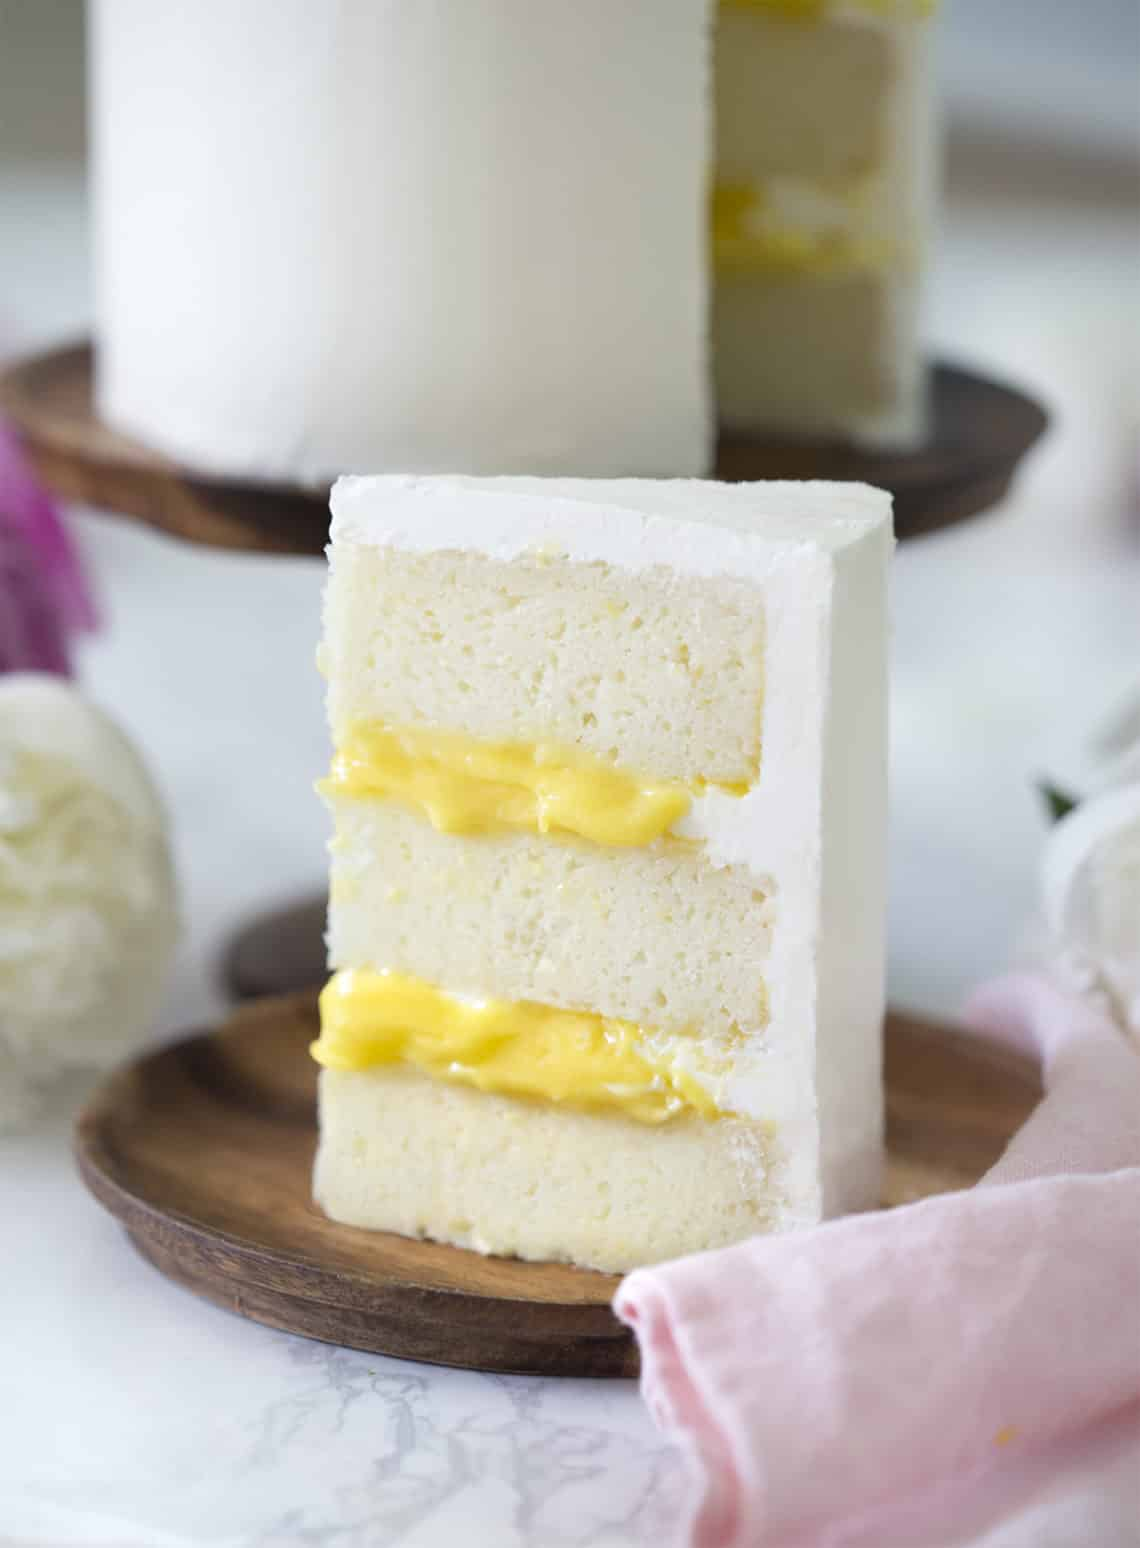 Photo showing a Lemon Elderflower Cake filled with yellow lemon curd